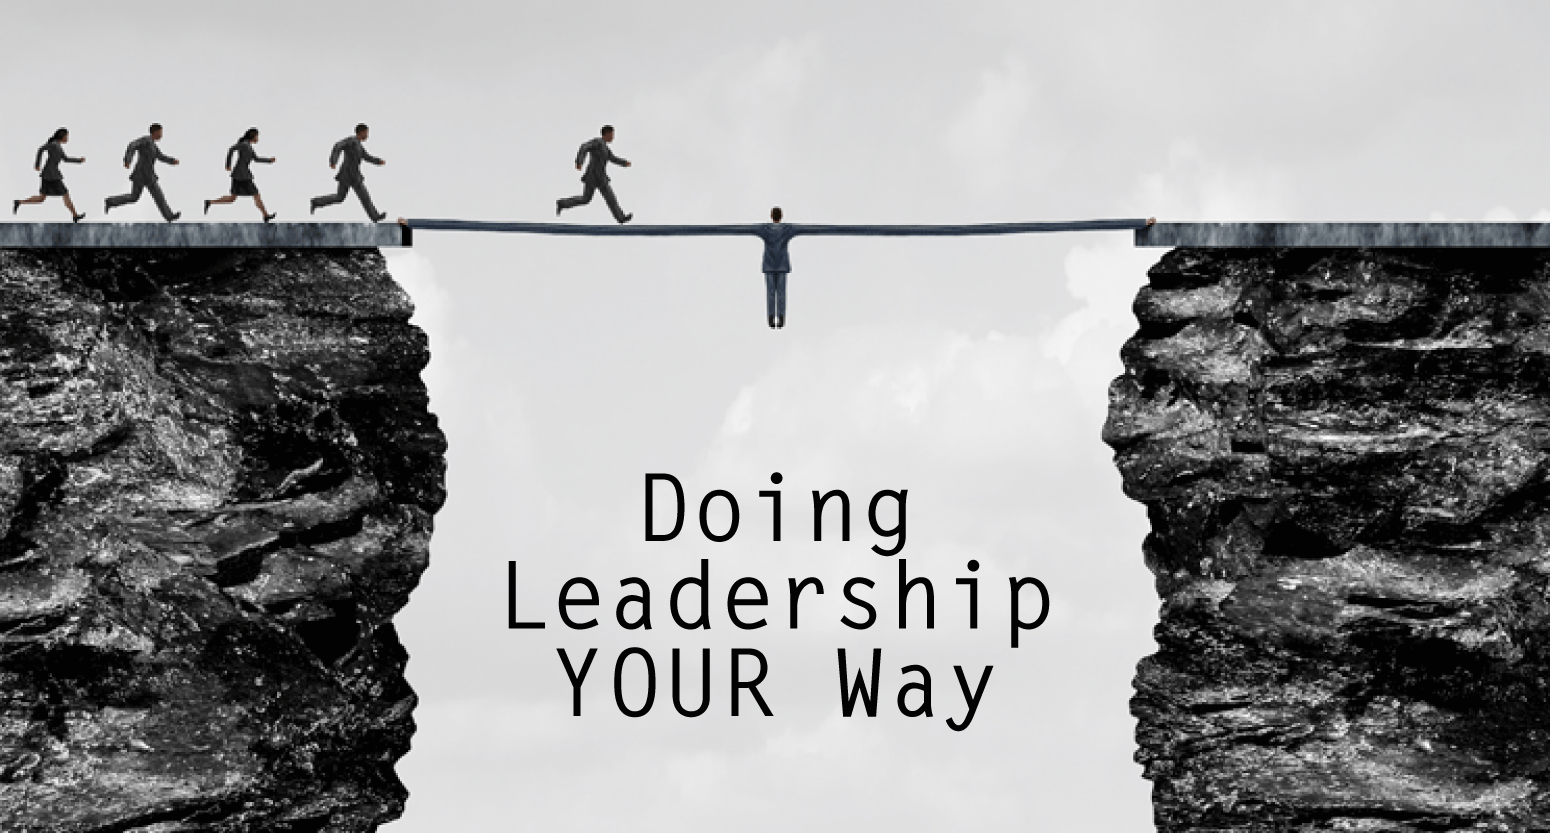 Doing Leadership YOUR Way - Elearning Strategy